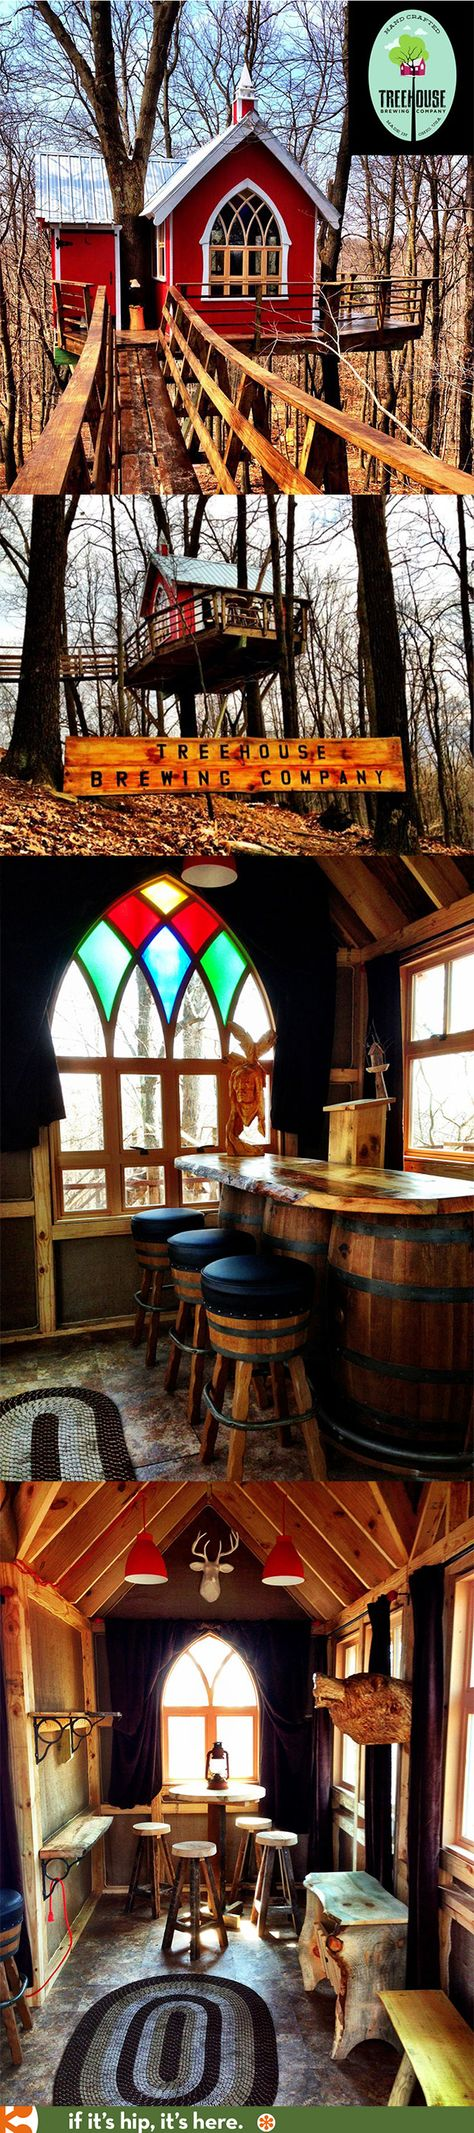 It's A Tree House. It's A Brewery. It's The Treehouse Brewing Company!